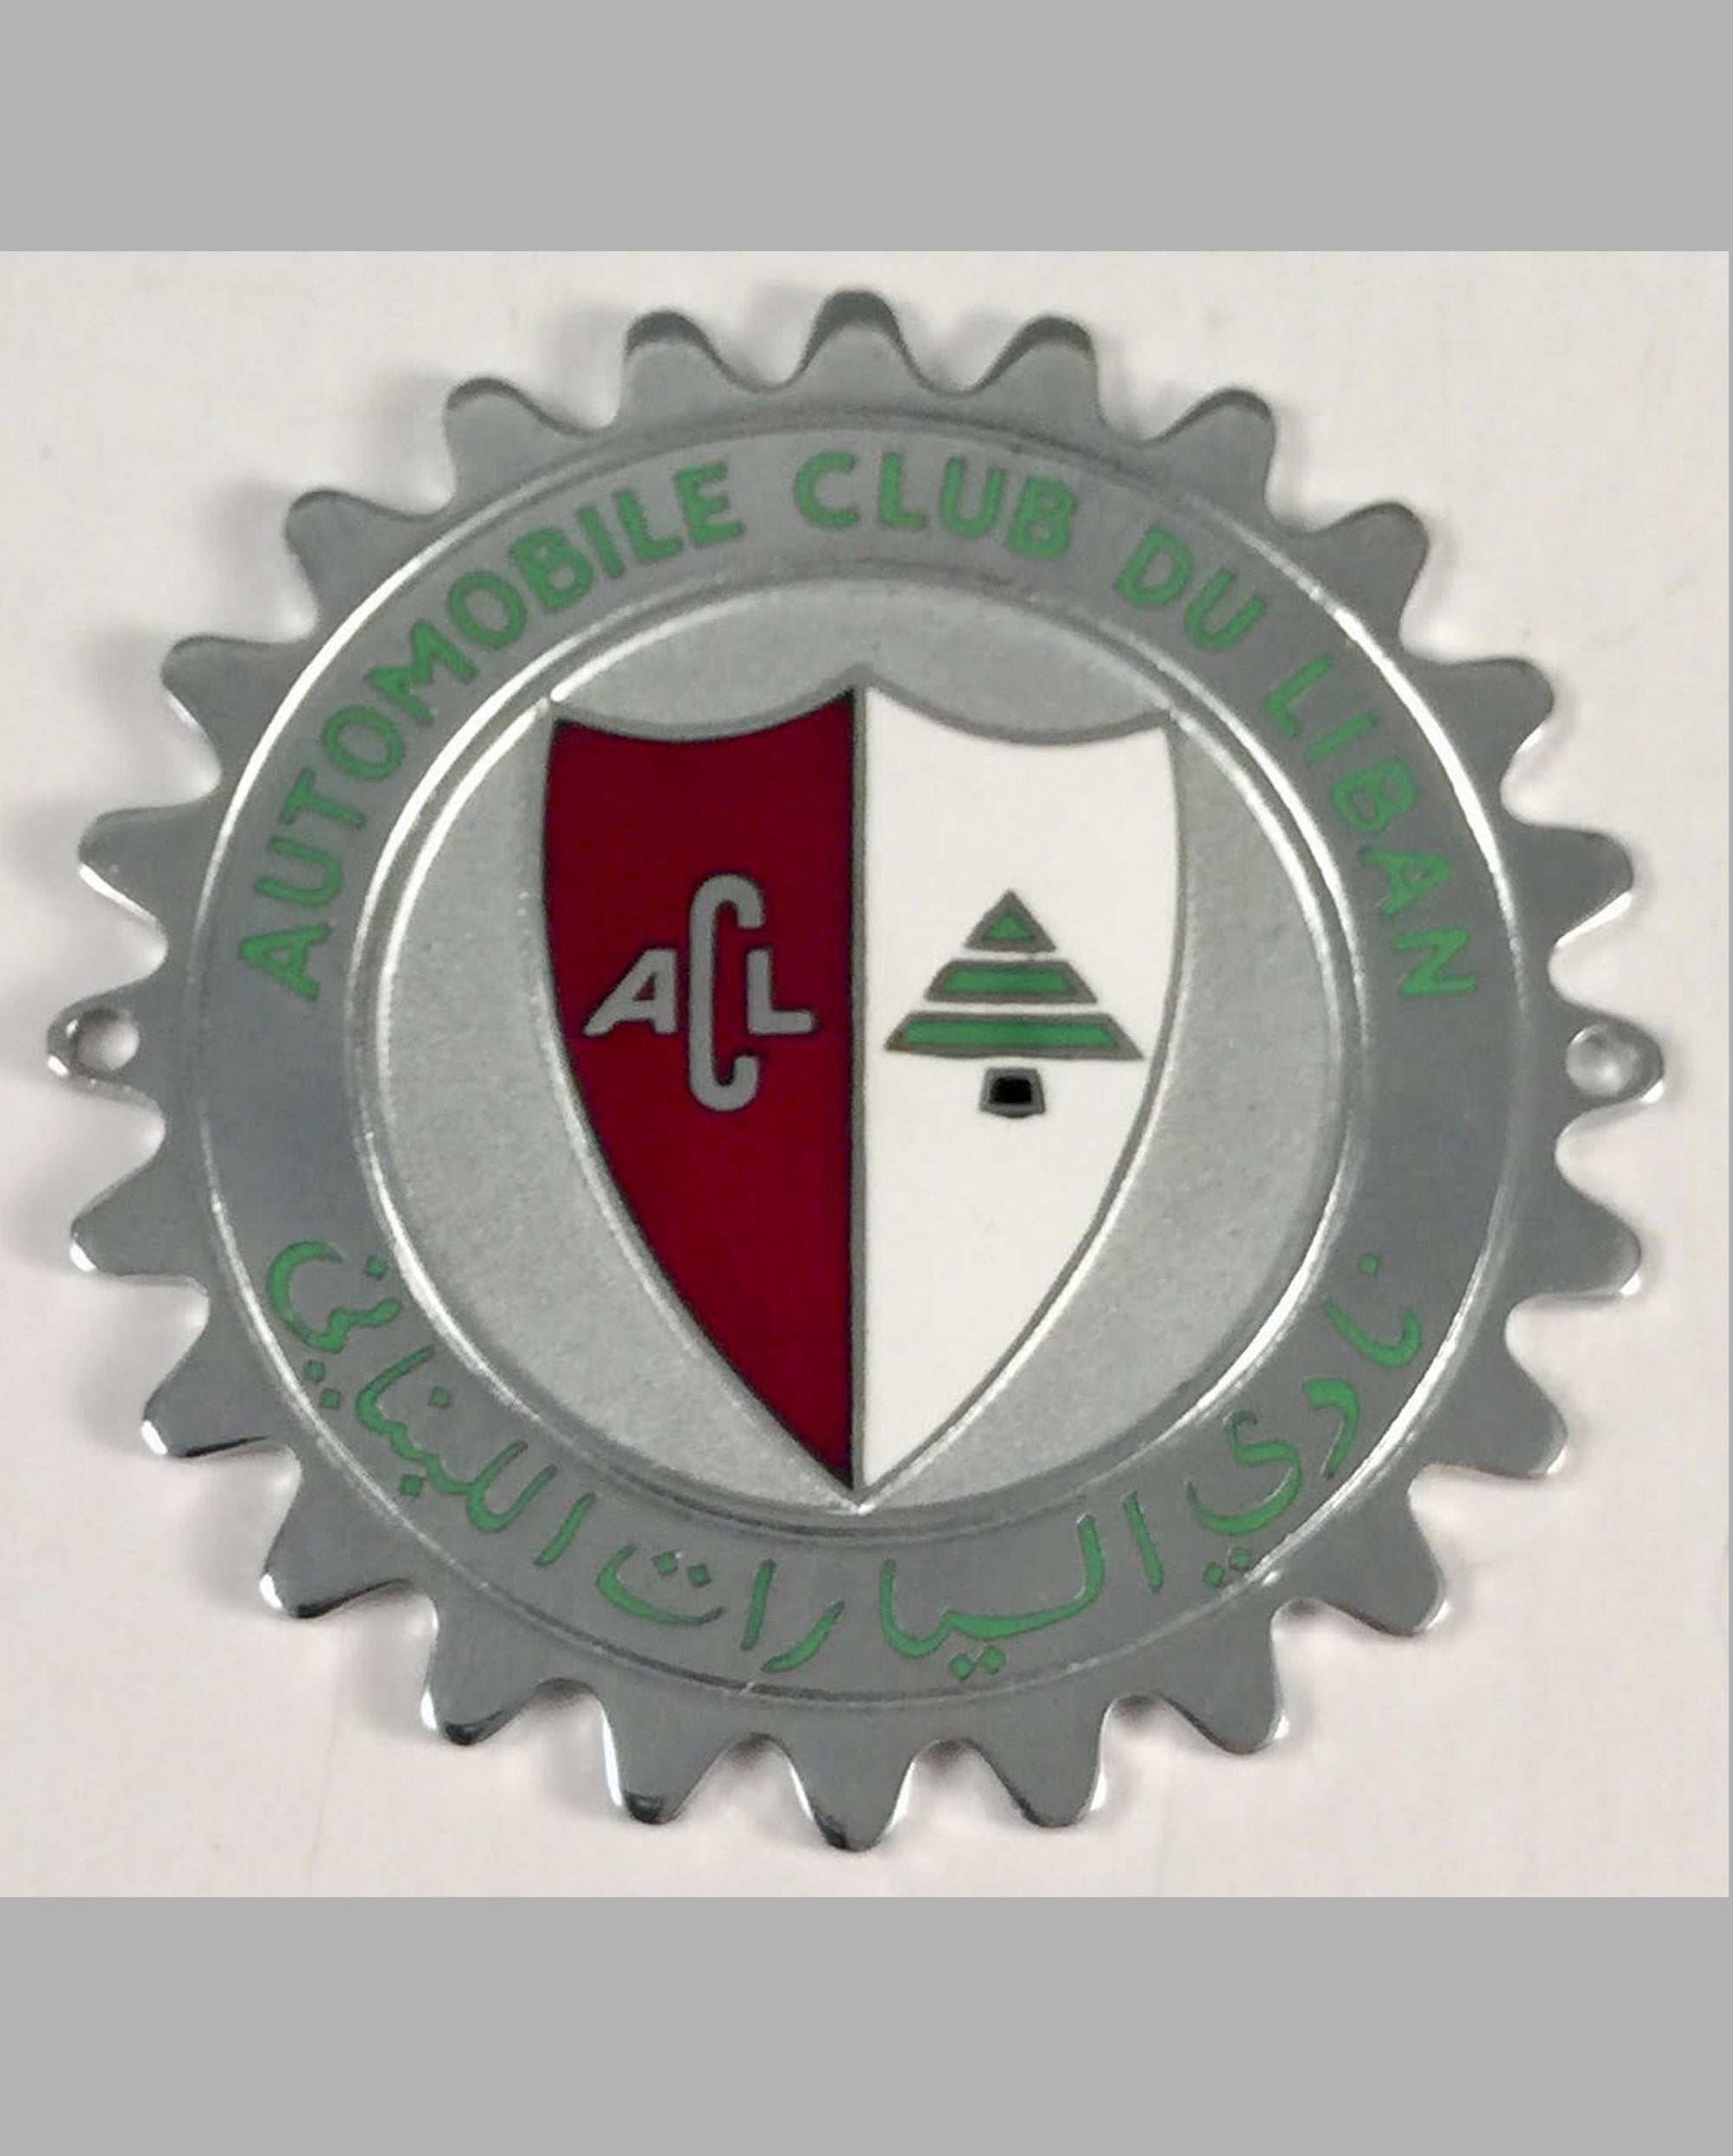 Automobile Club du Liban car grill badge